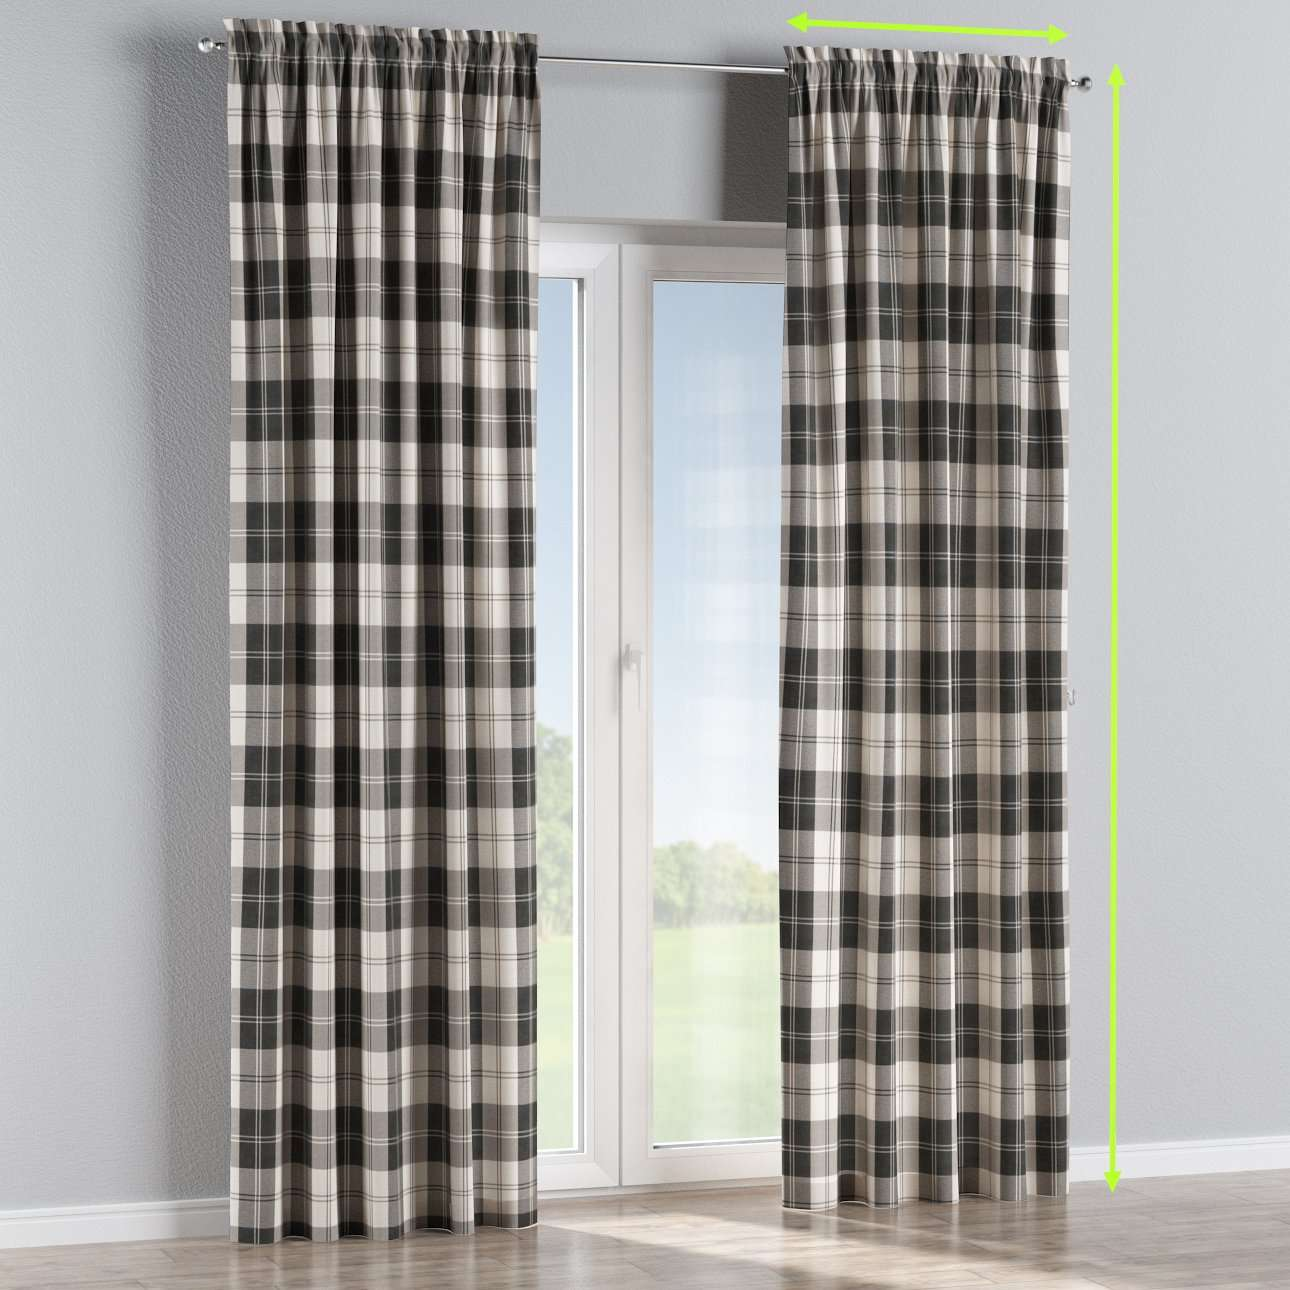 Slot and frill lined curtains in collection Edinburgh, fabric: 115-74